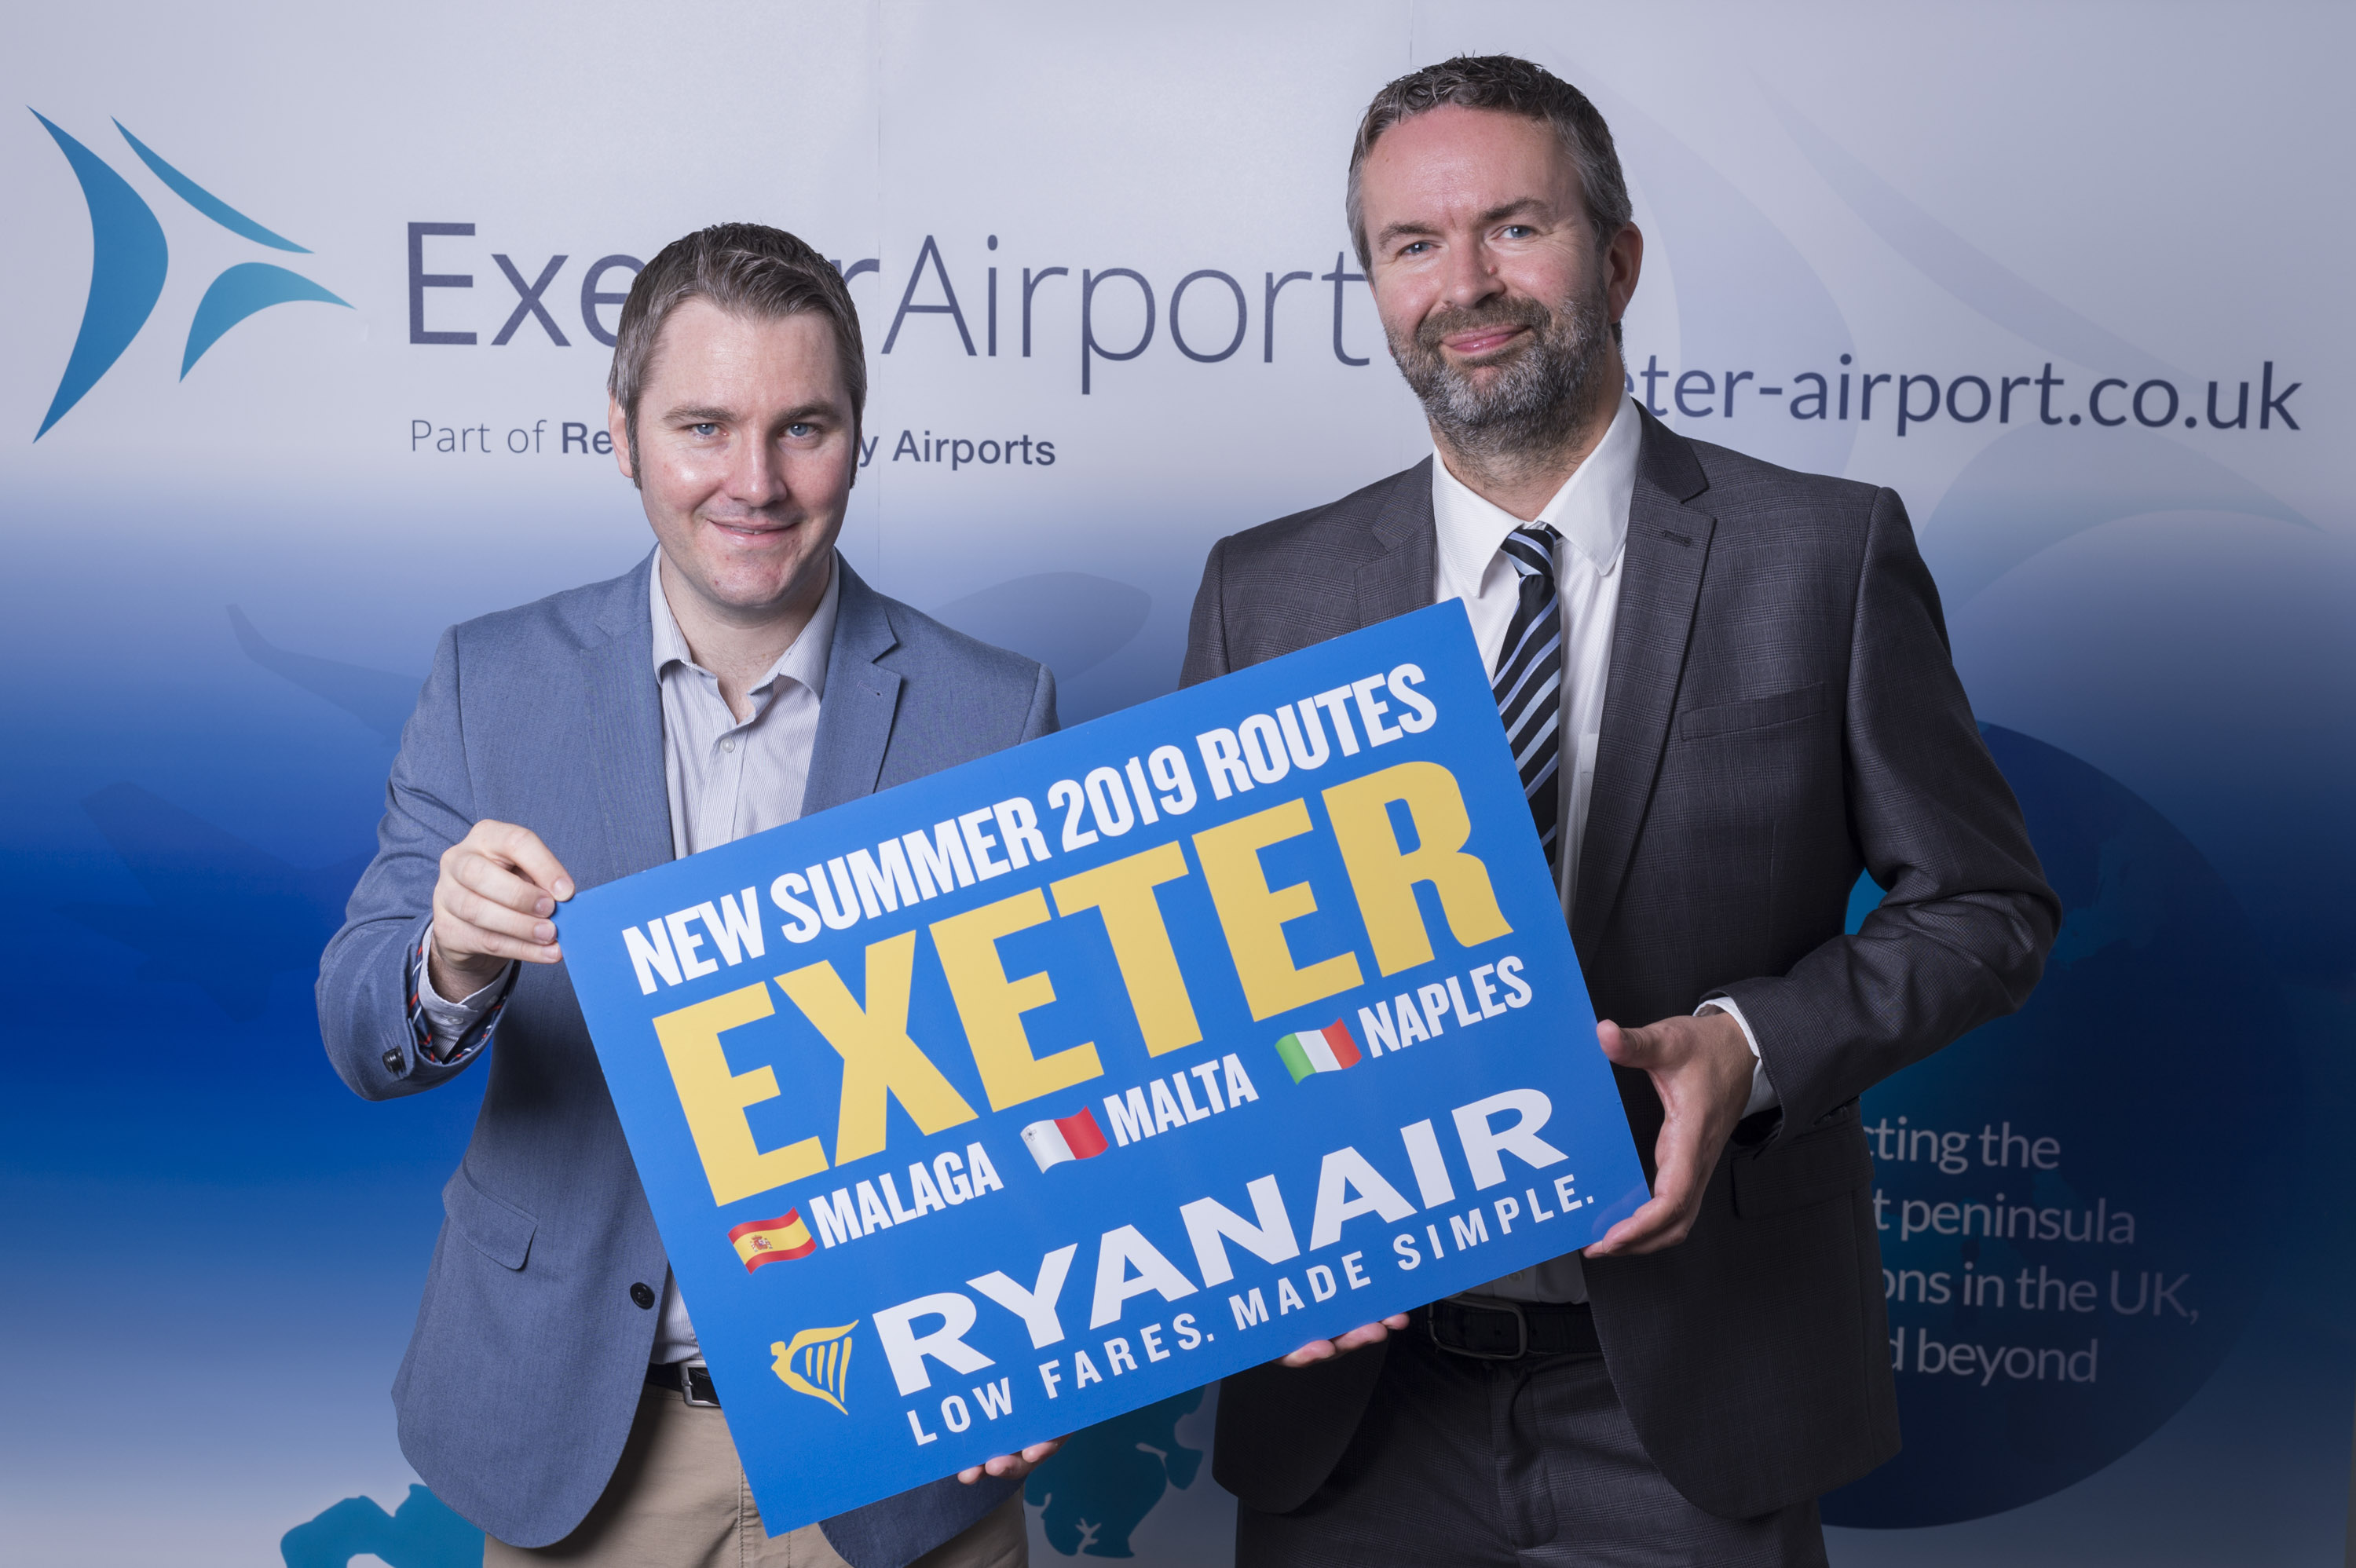 Ryanair S Low Fares Come To Exeter Exeter Airport